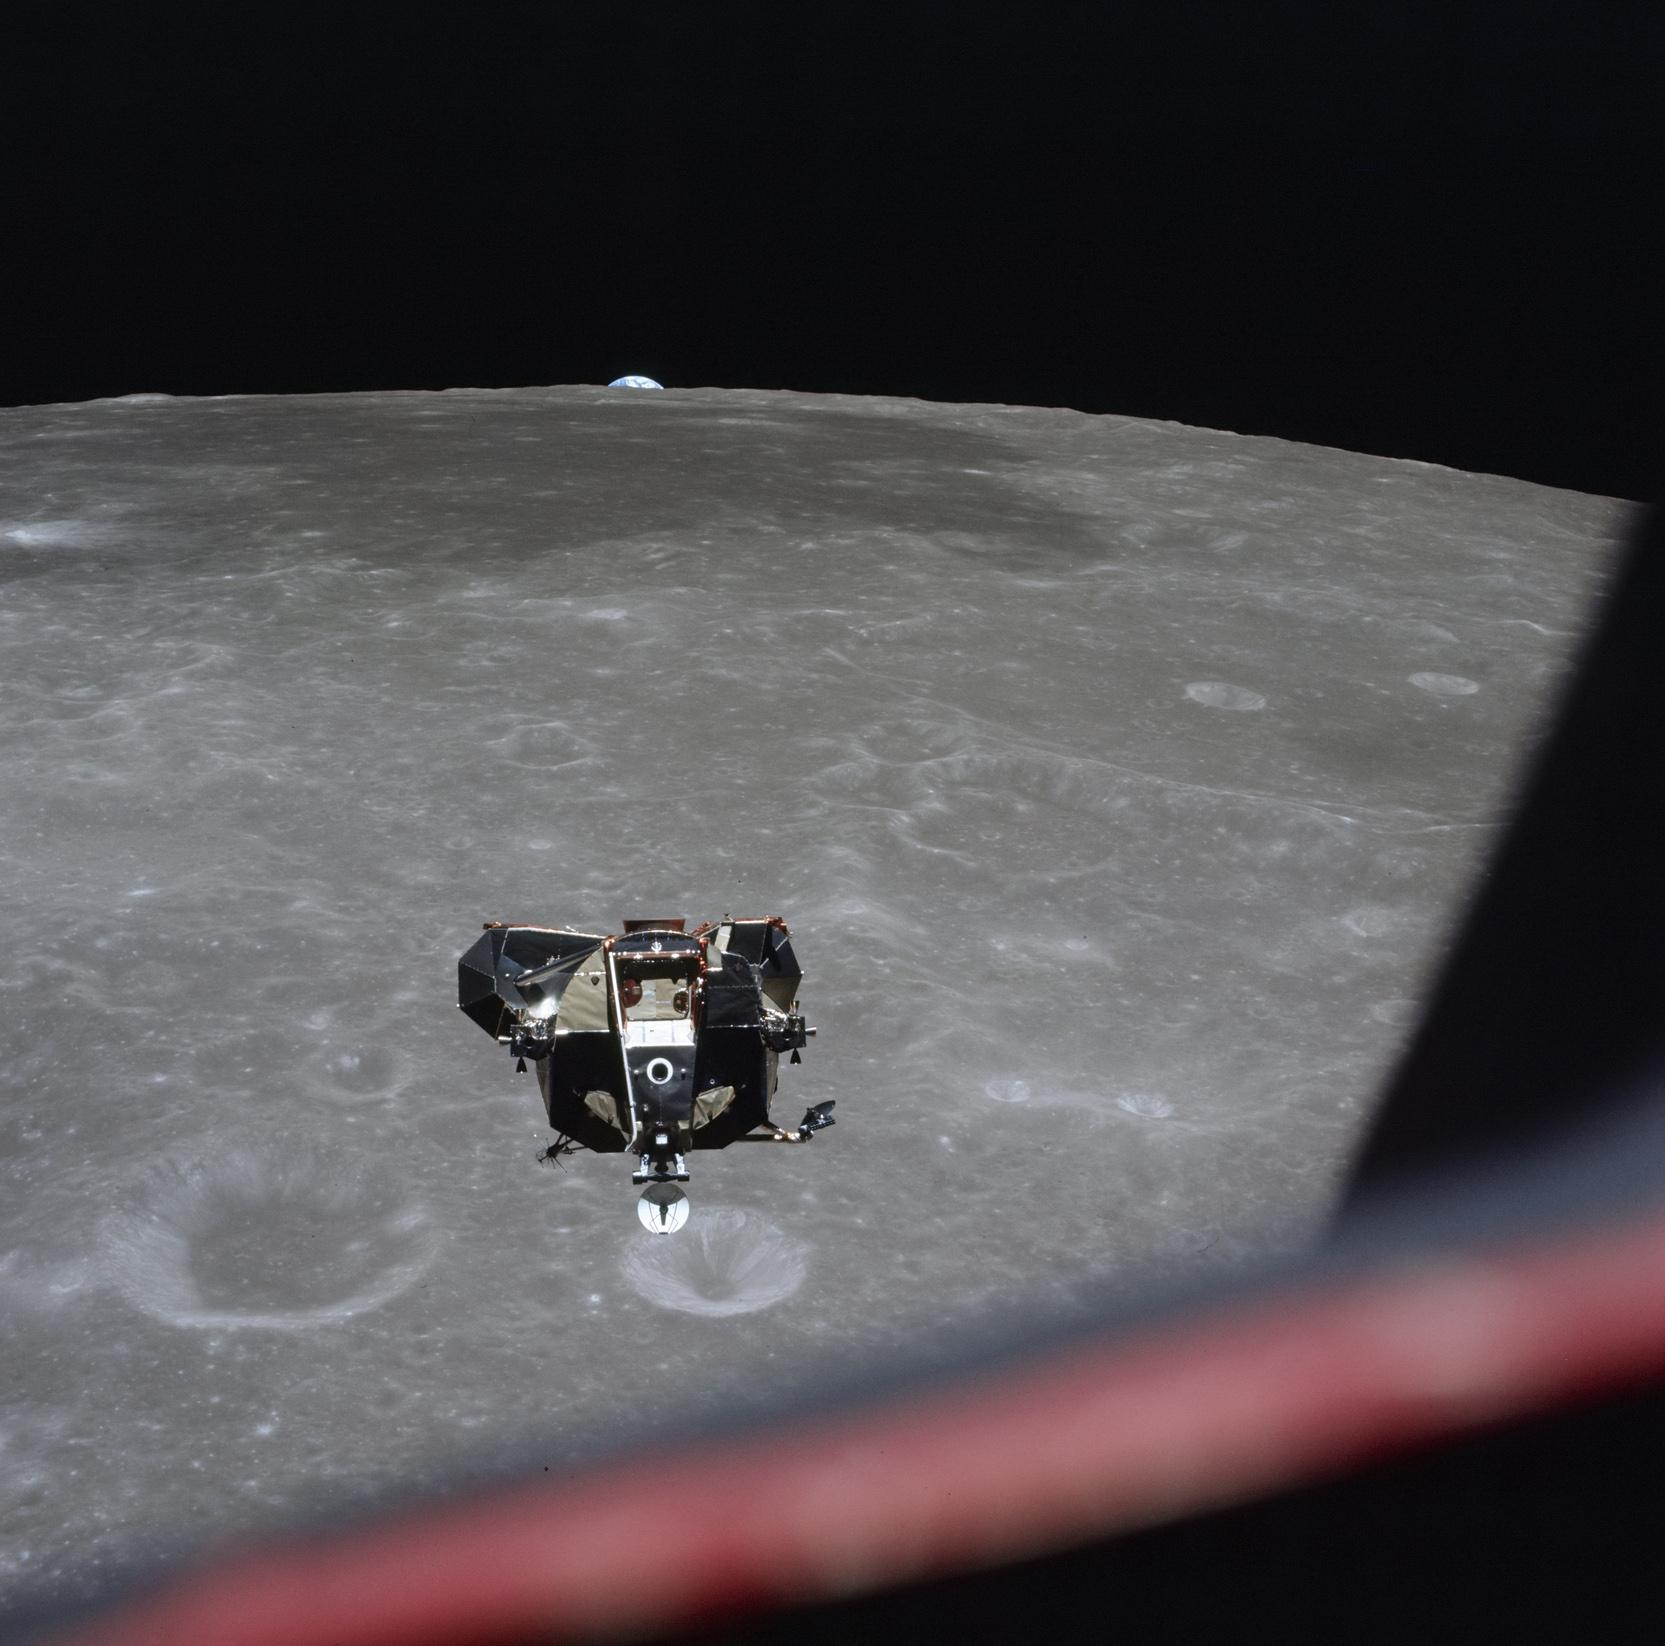 This July 21, 1969 photo made available by NASA shows the Lunar Module approaching the Command Module with the Earth visible behind the moon. (Michael Collins / NASA via AP)